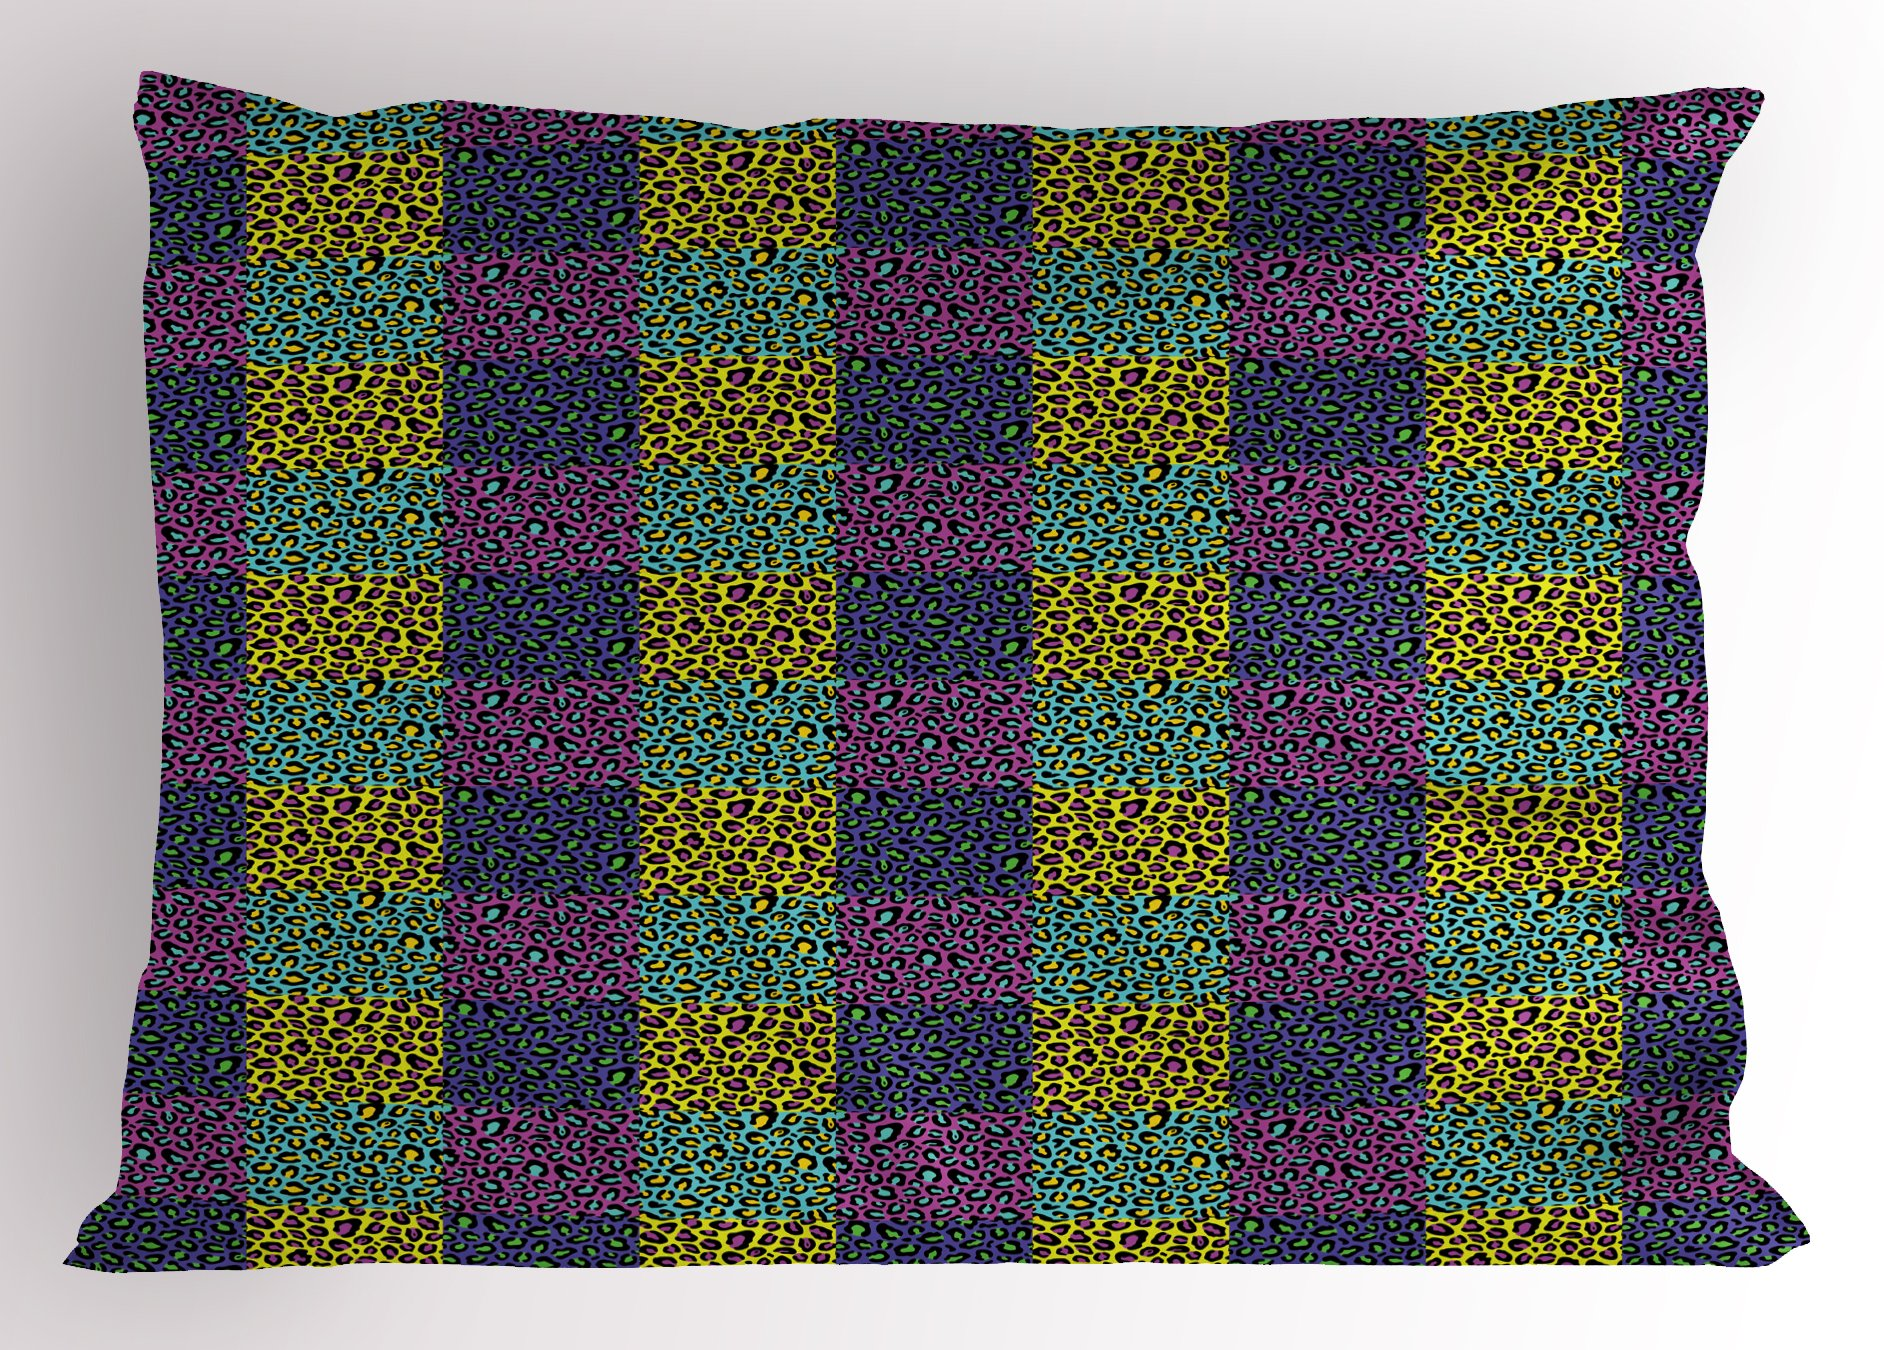 Ambesonne Leopard Print Pillow Sham, Colorful Checkered Pattern with Eighties Style Pop and Hipster Animal Spots, Decorative Standard Queen Size Printed Pillowcase, 30 X 20 inches, Multicolor